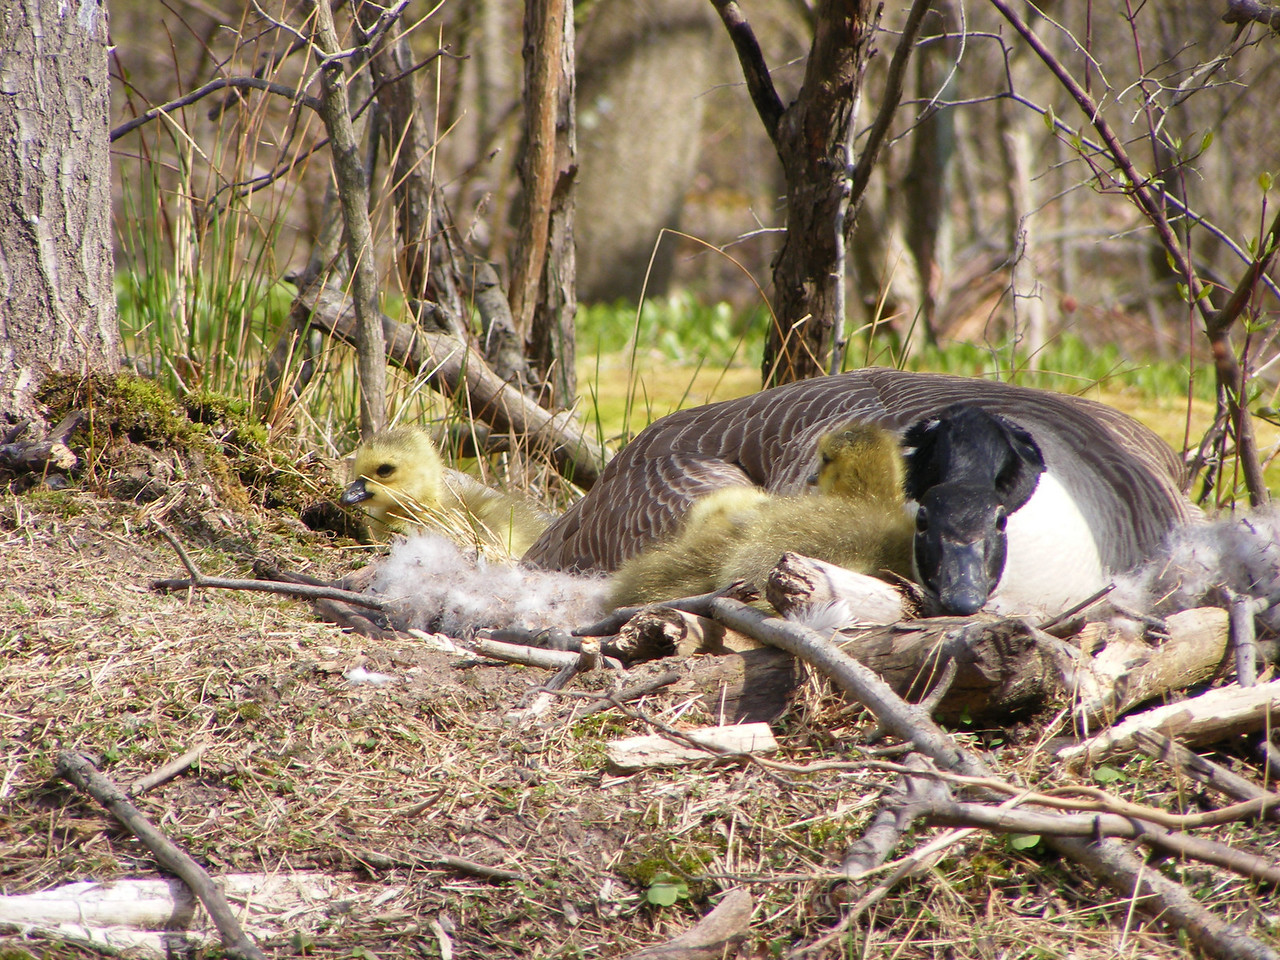 Mother goose intent on any threat to goslings